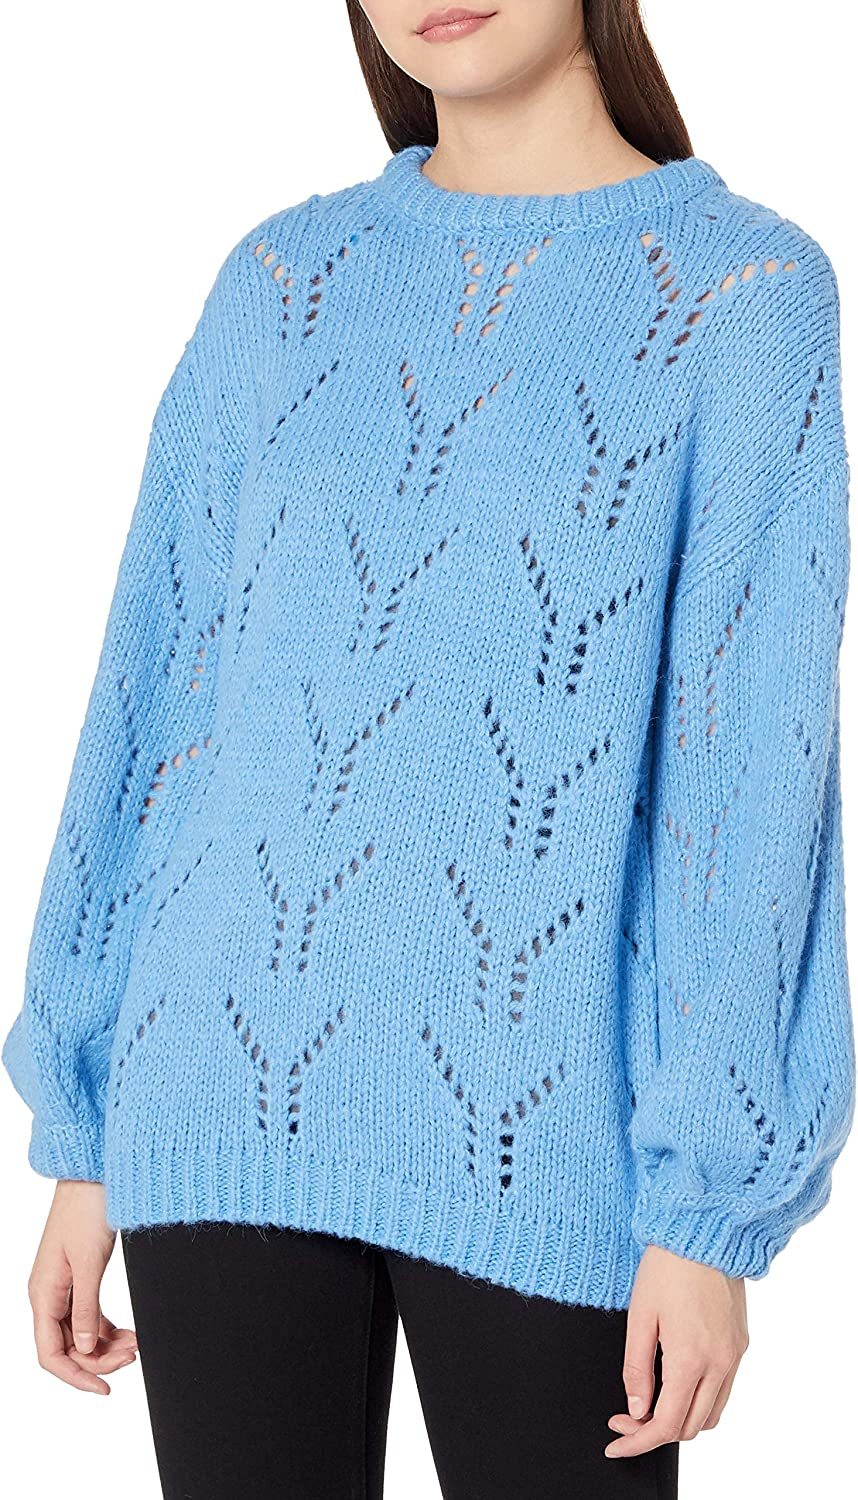 J.O.A. Dealing full price reduction Women's Balloon Max 77% OFF Sleeve Sweater Pointelle